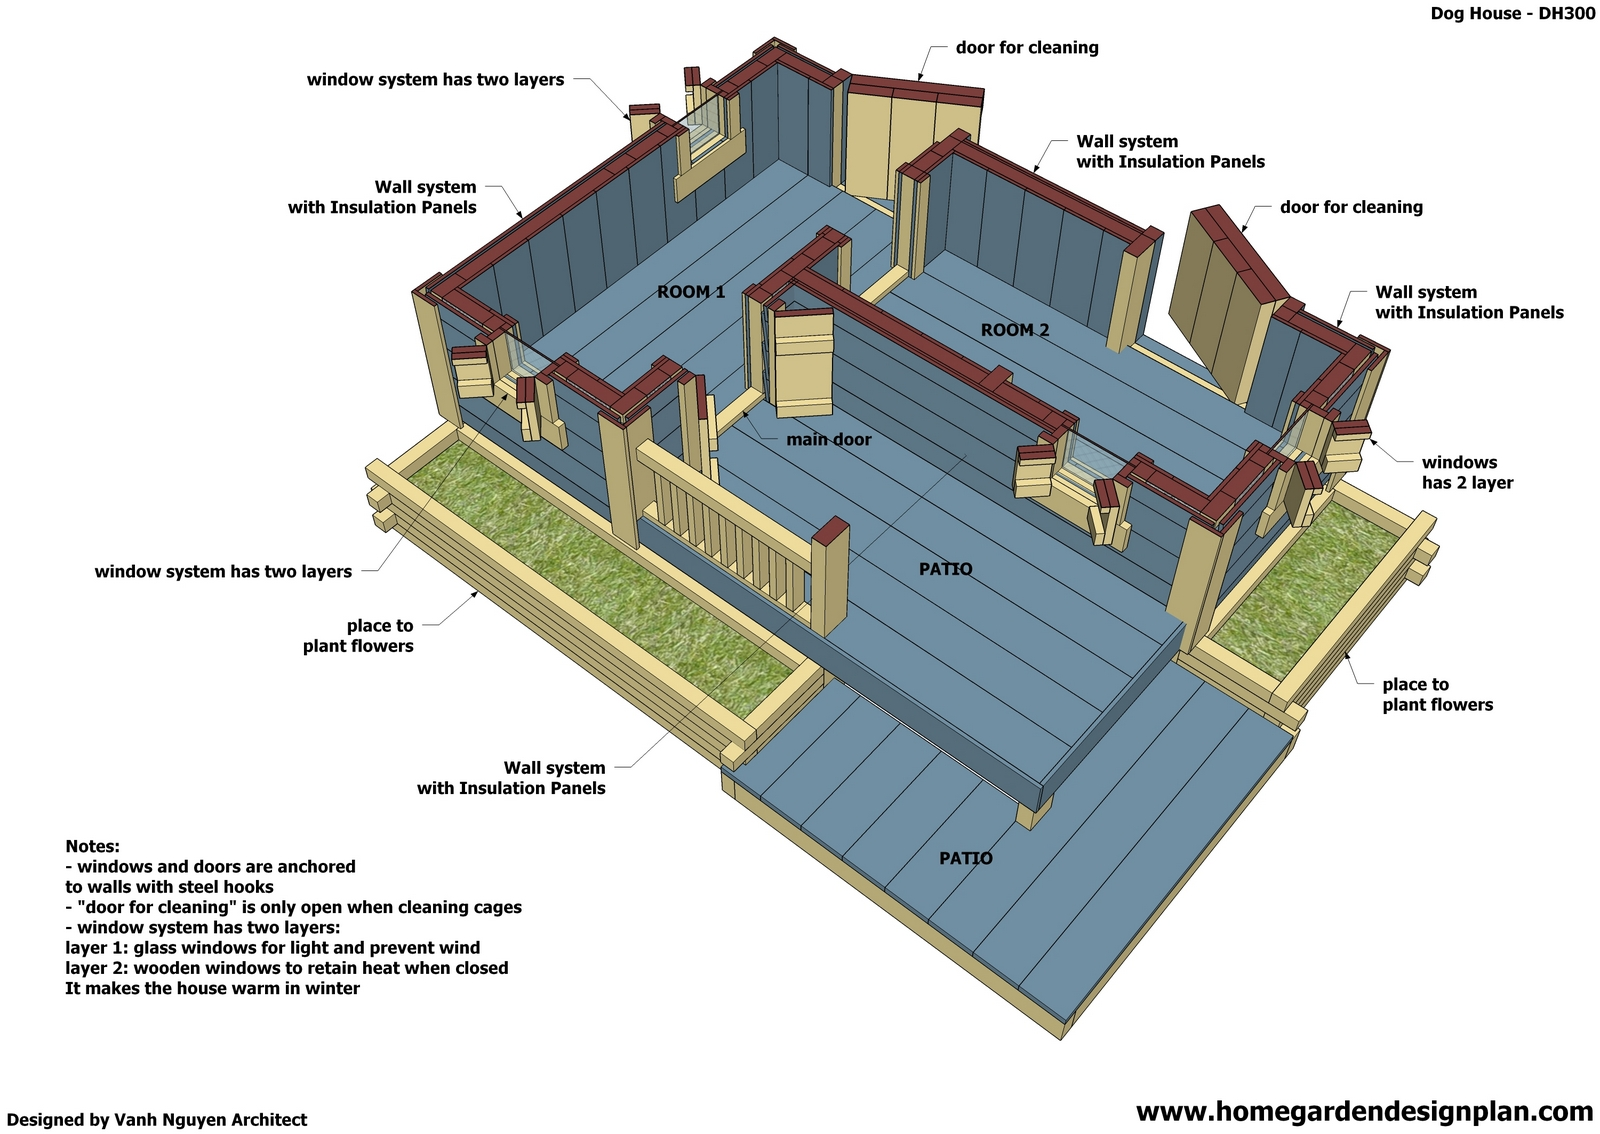 Home Garden Plans Dh300 Dog House Plans Free How To